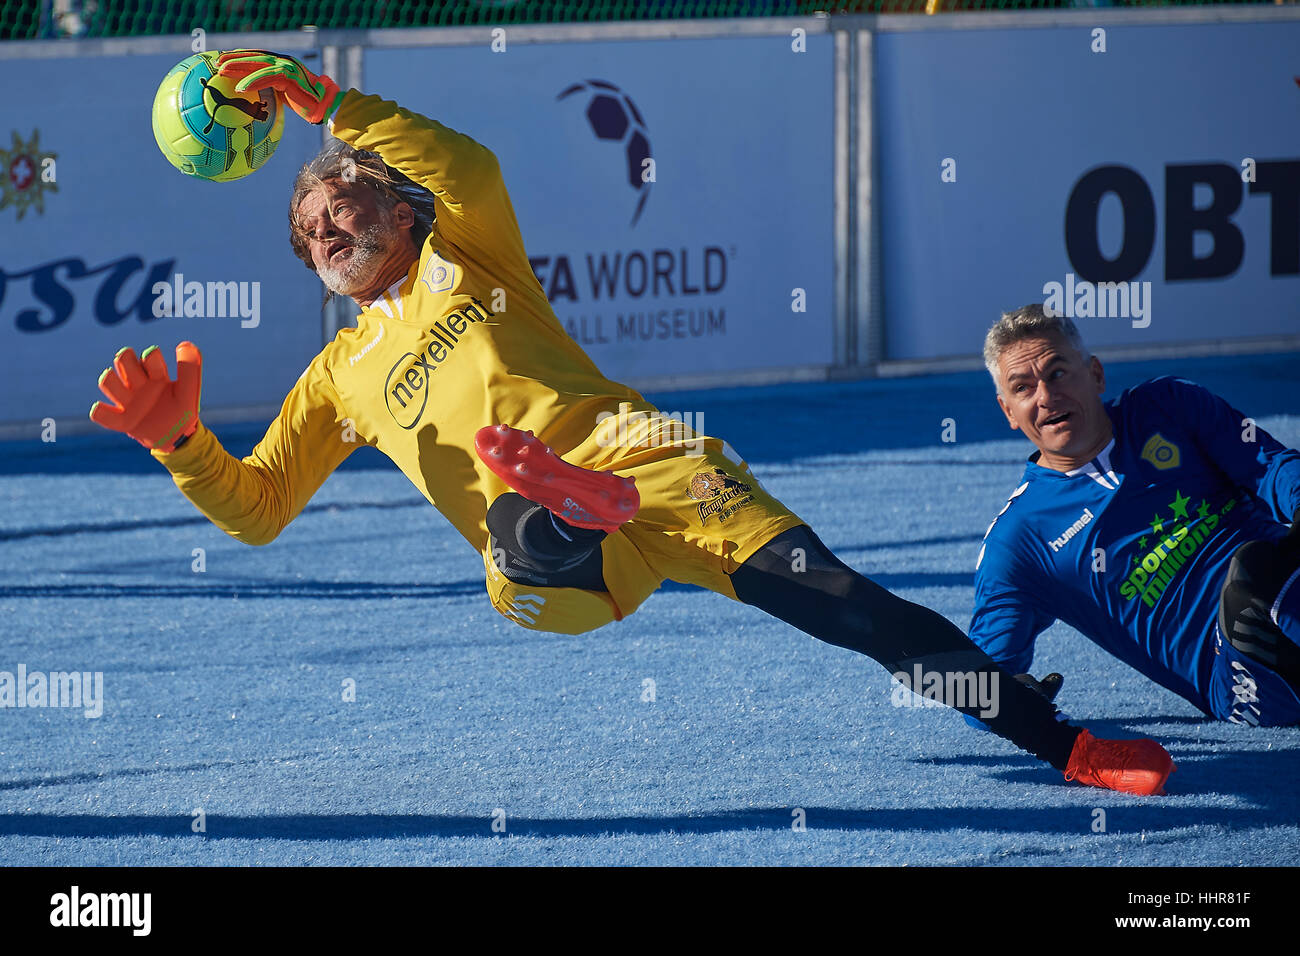 Arosa, Switzerland, 20th January 2017. Swiss goalkeeper Jörg Stiel with a save during the 7th Inofficial Snow - Stock Image